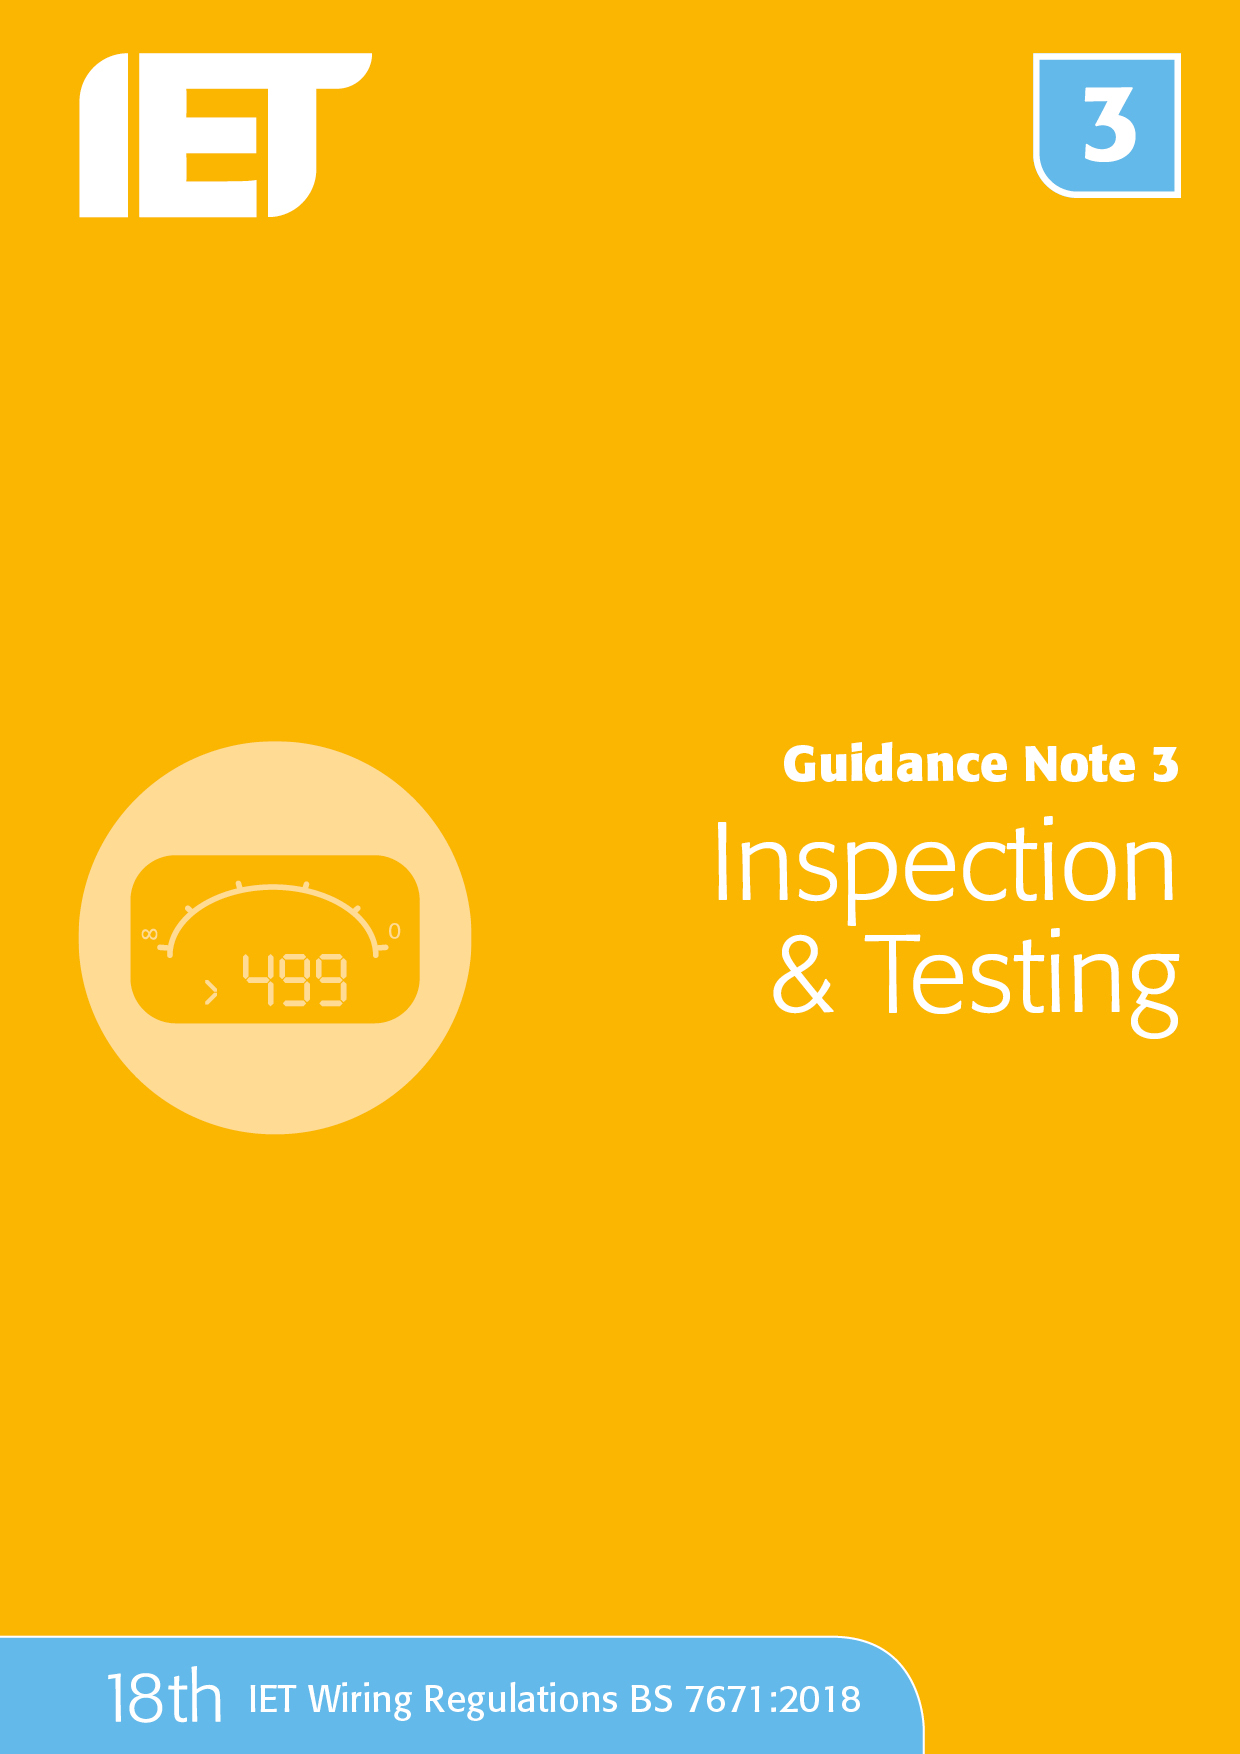 Guidance Note 3: Inspection & Testing, 8th Edition